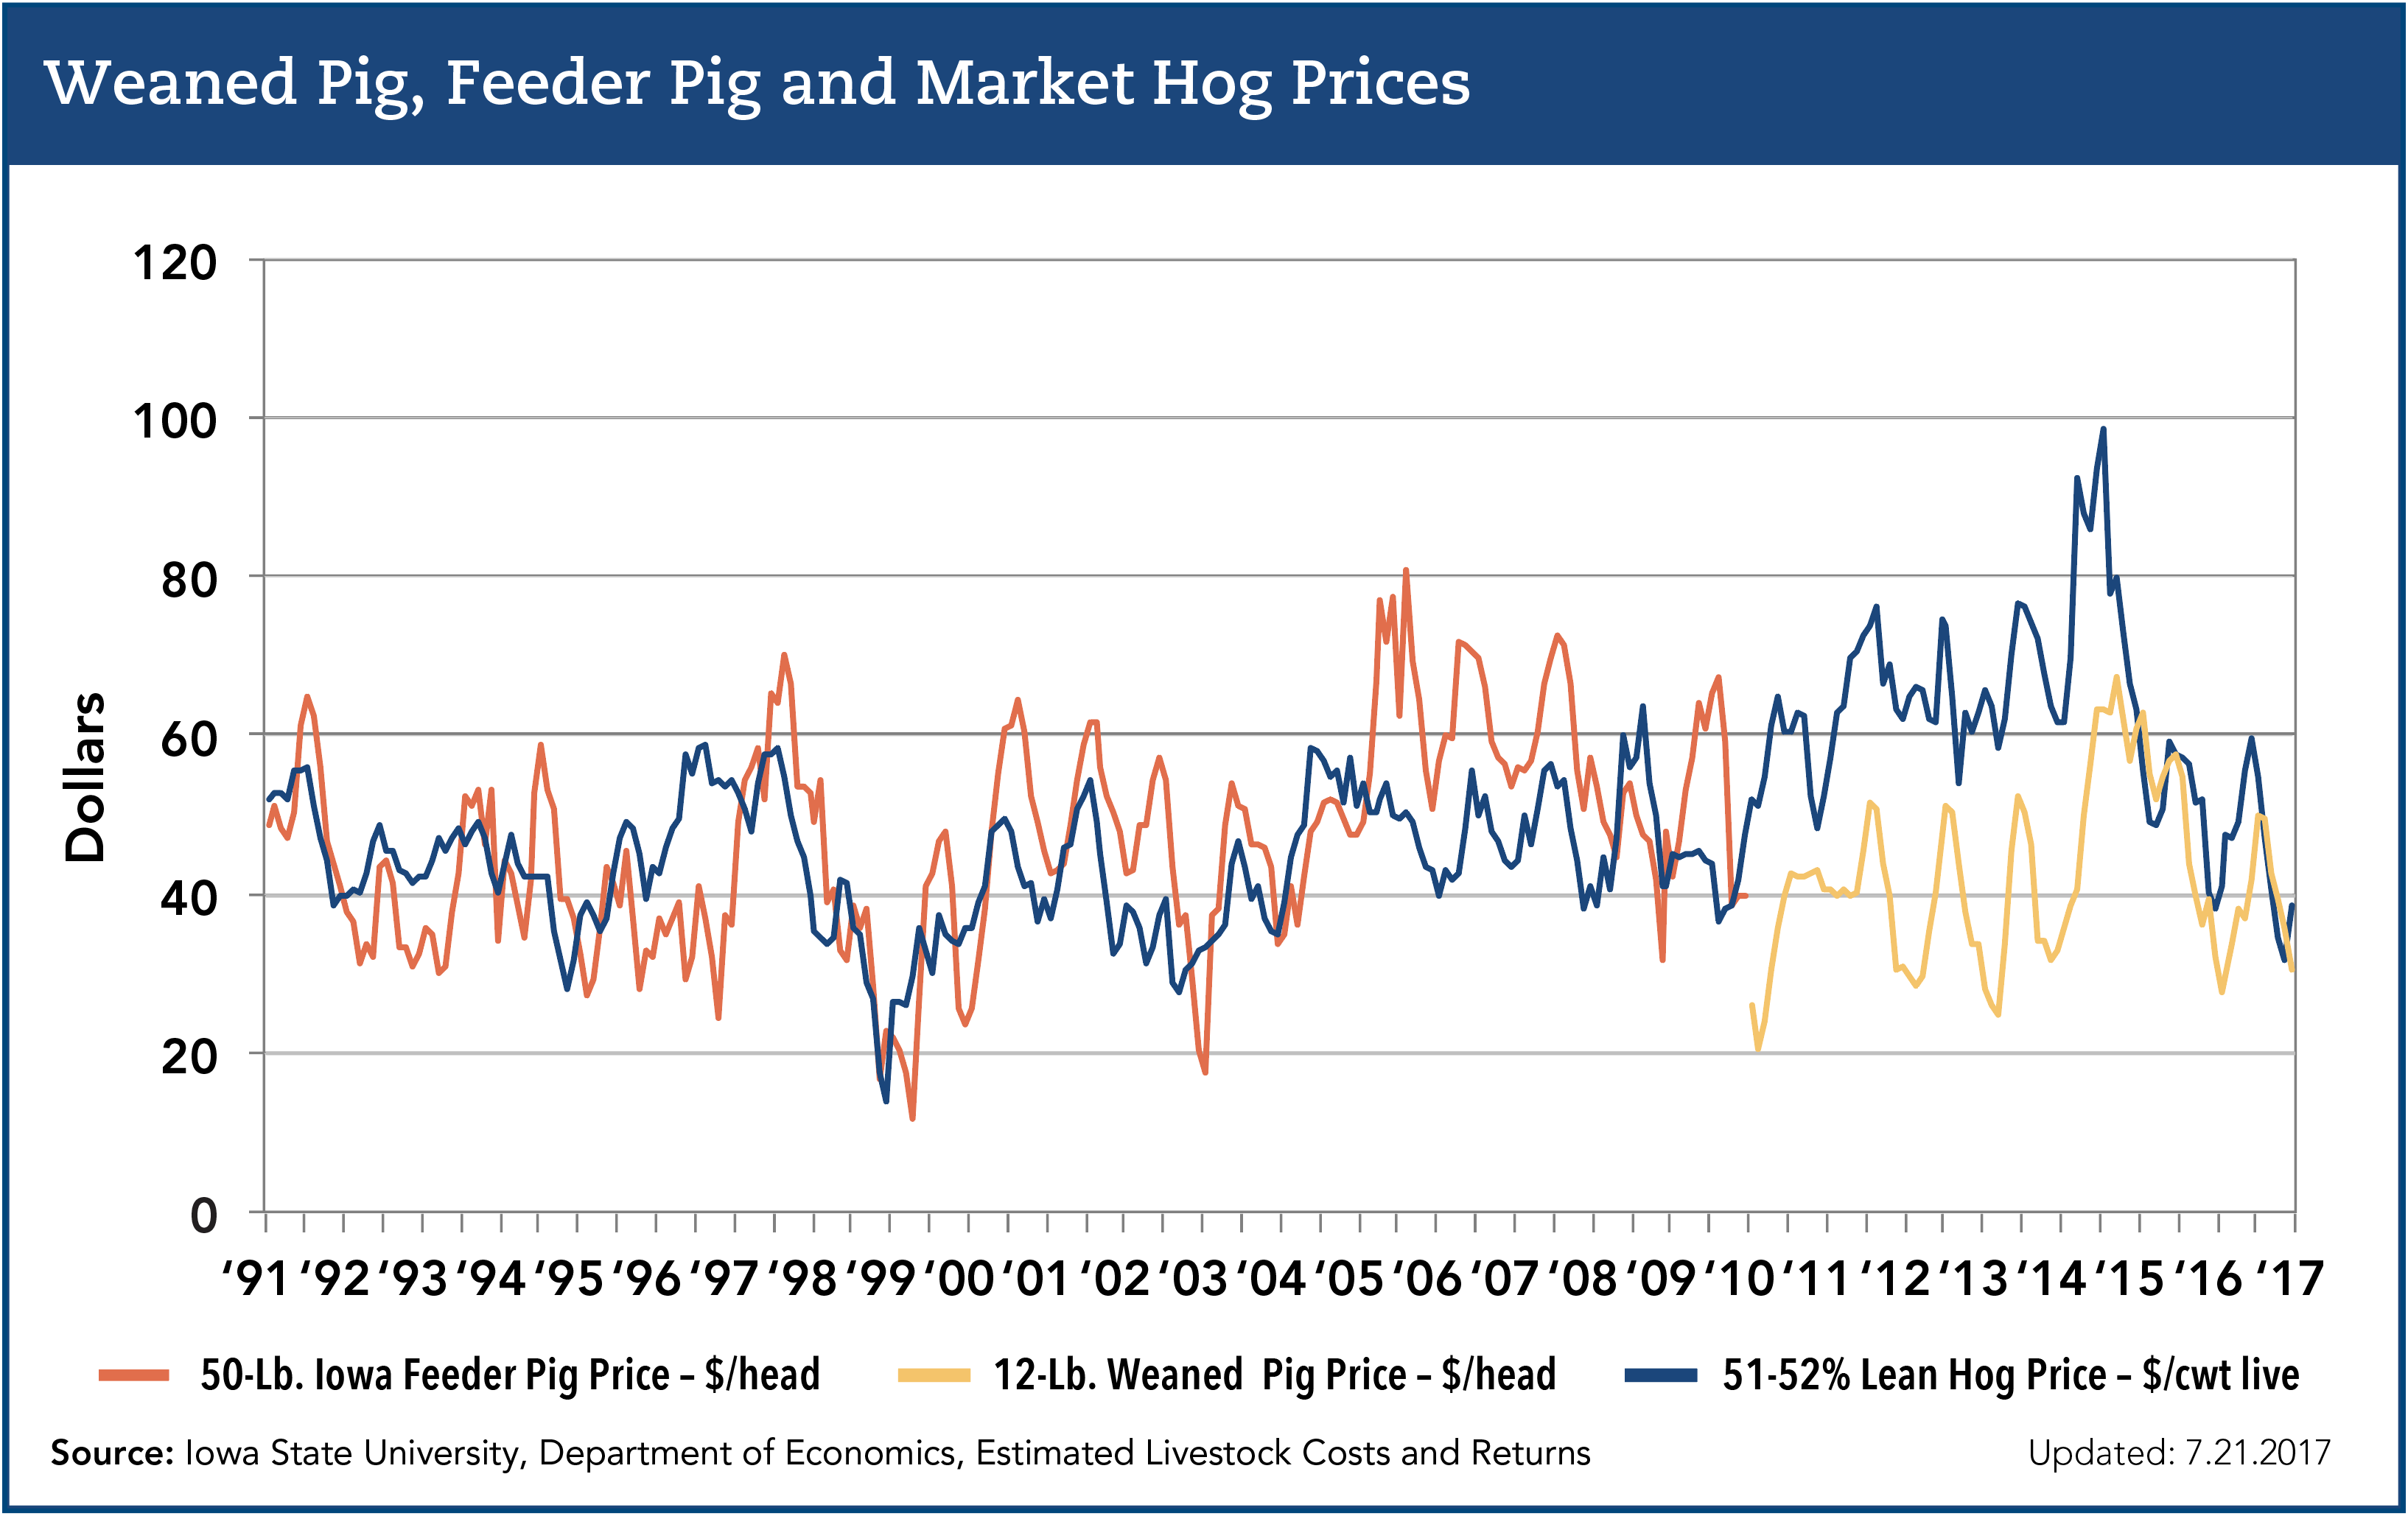 weaned pig, feeder pig and market hog prices